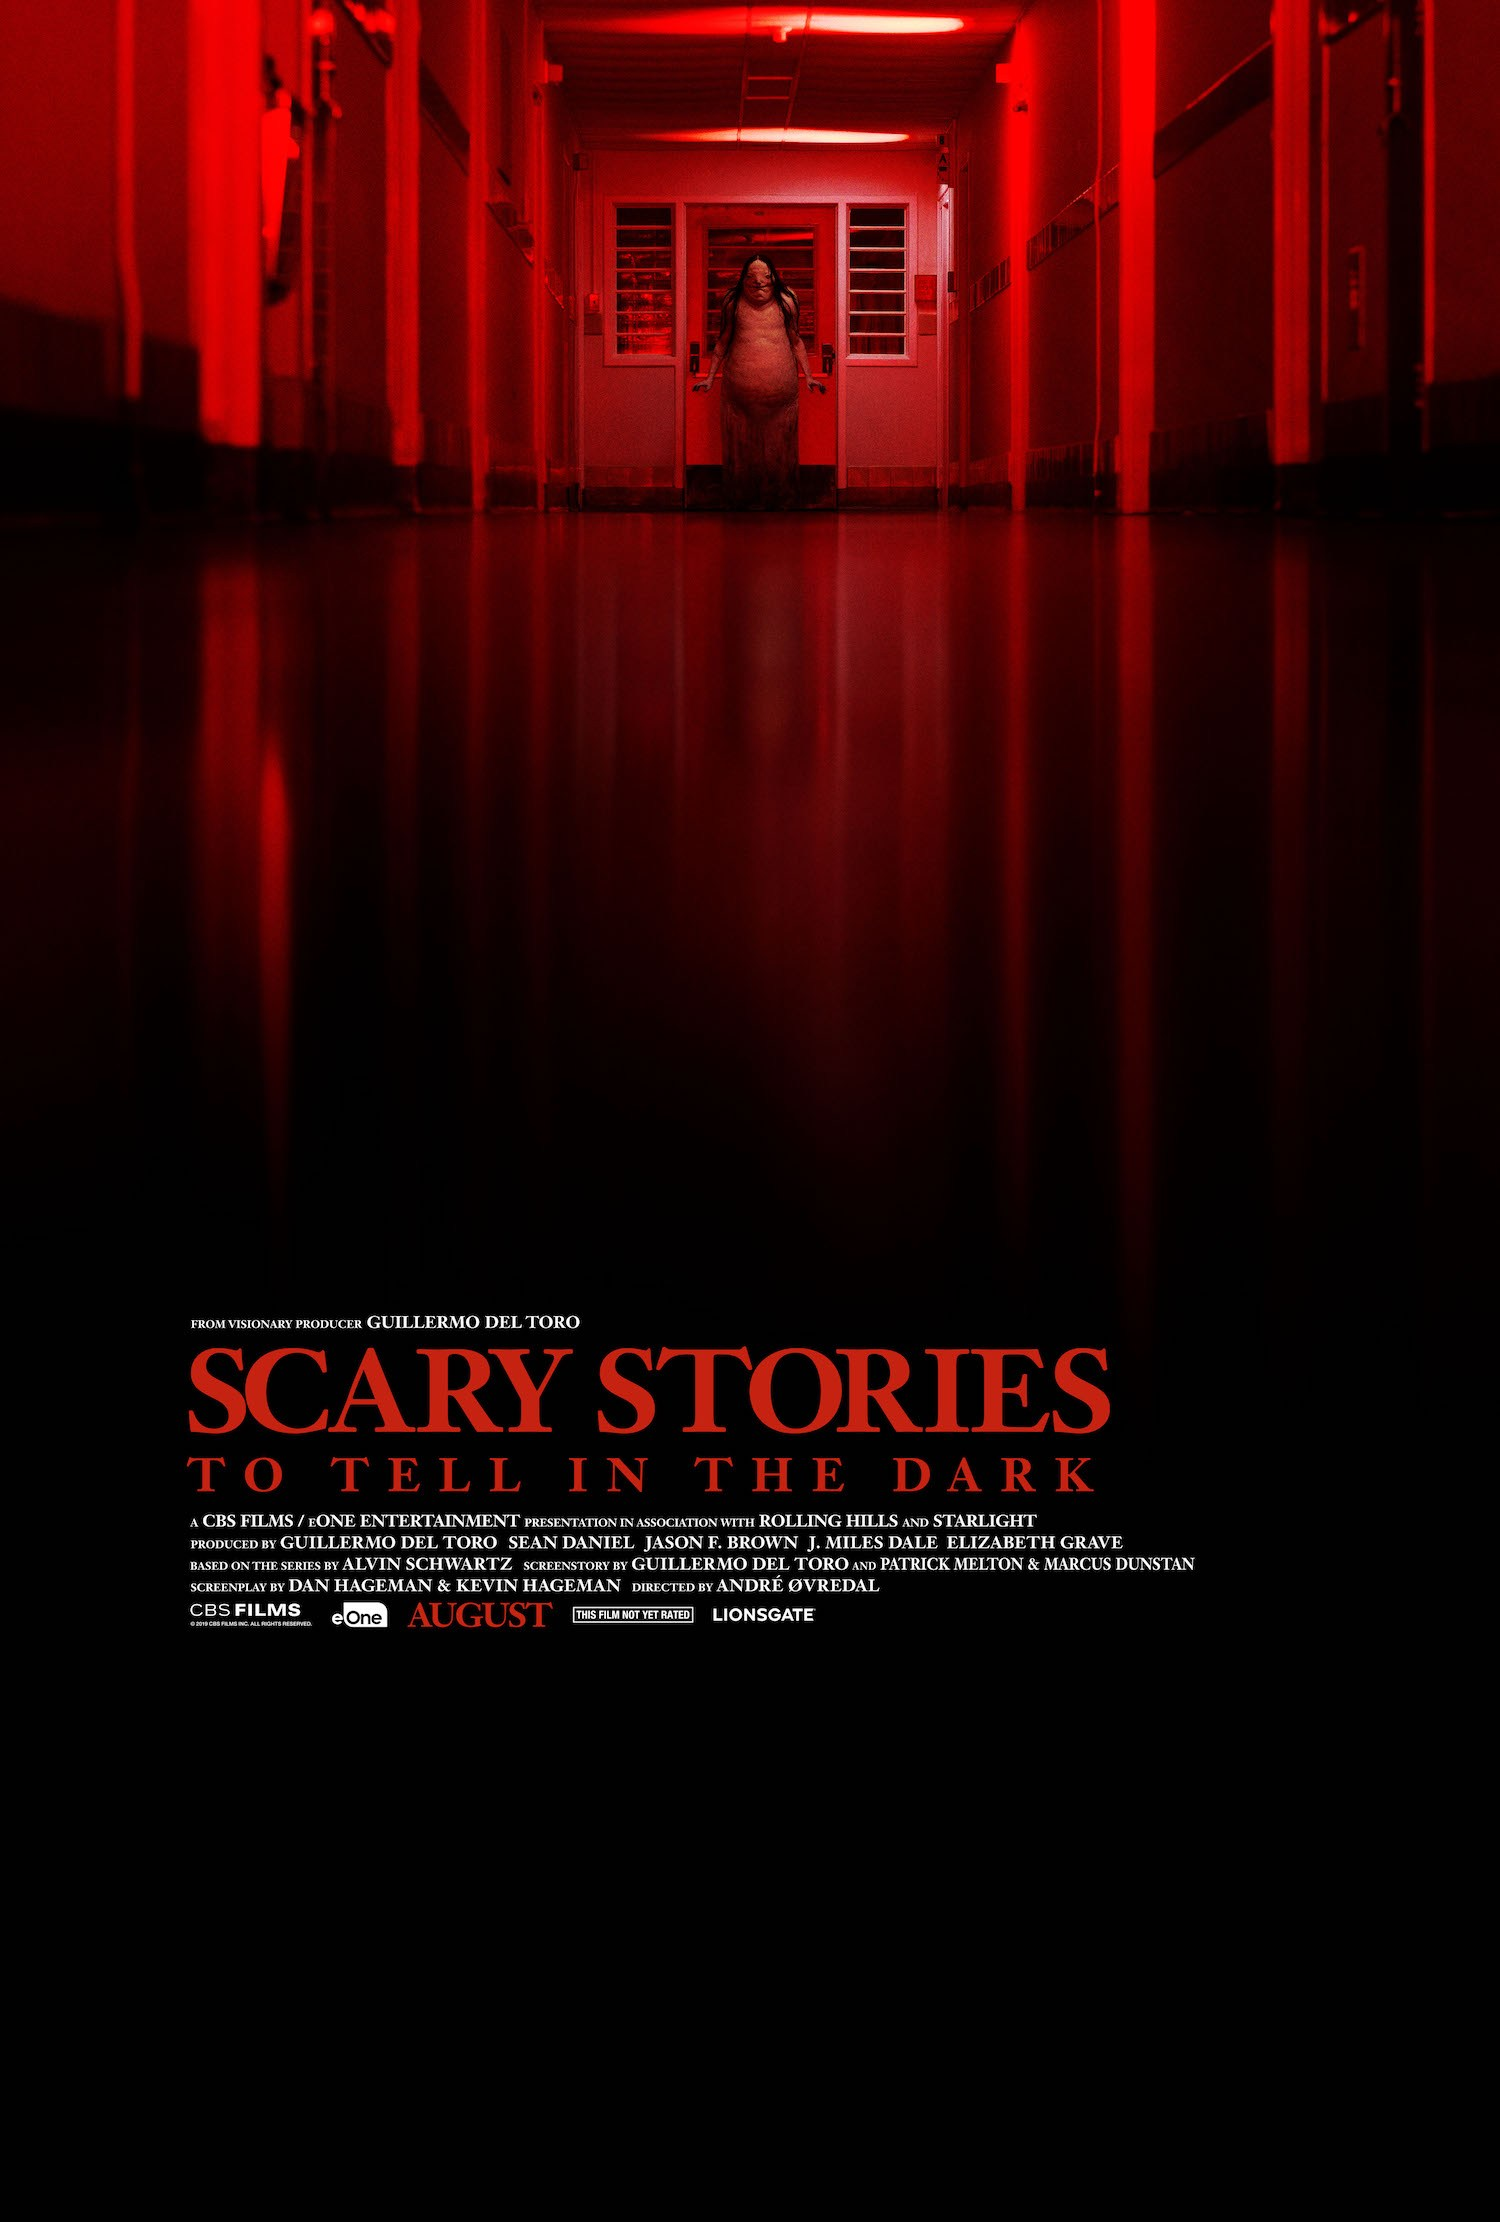 scary stories poster pale lady